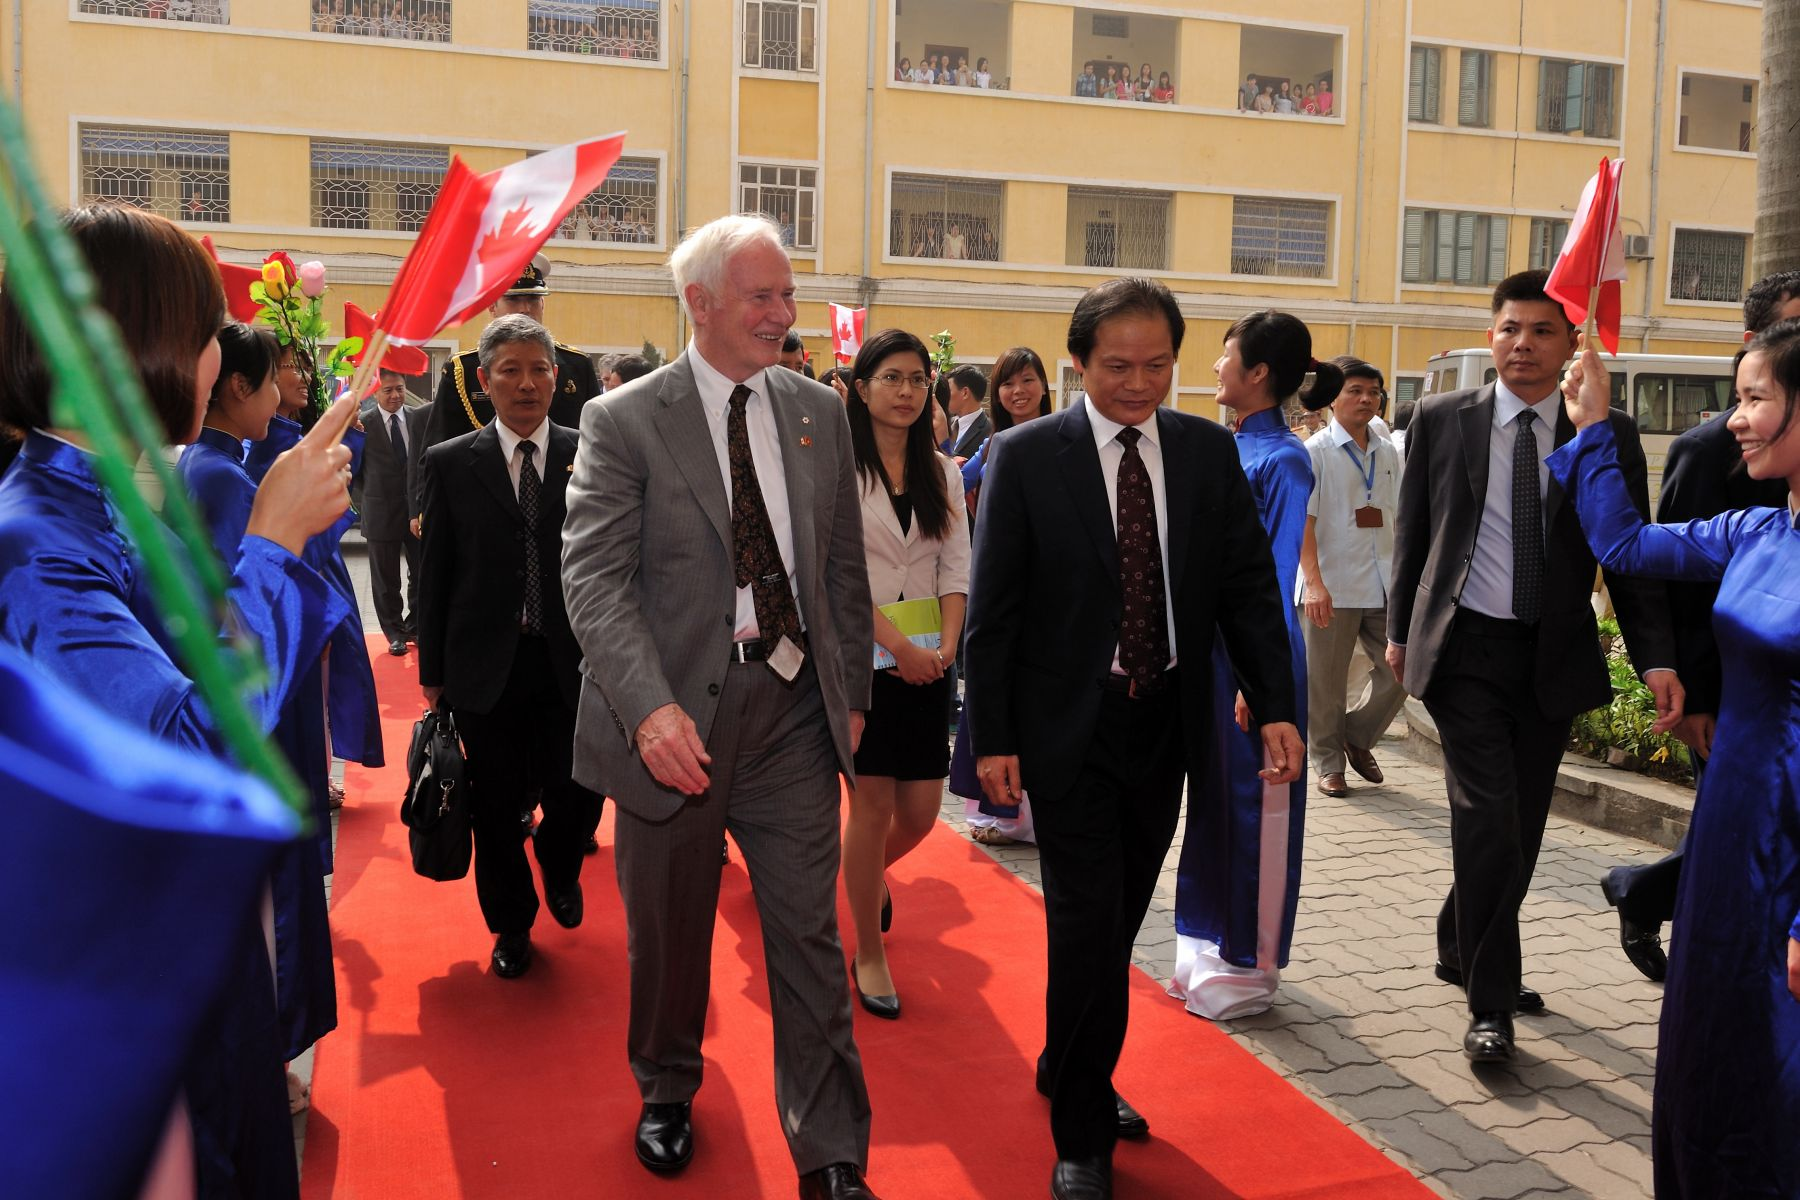 The Governor General was warmly welcomed upon his arrival to the Hanoi University of Social Sciences and Humanities. The Hanoi University of Social Sciences and Humanities has more than 100 international partners, including three Canadian universities (the University of Quebec in Abitibi-Témiscamingue; the University of Toronto; and Télé-Université (TÉLUQ) of the Université du Québec à Montréal). Founded in 1995, the USSH Faculty of International Studies is the only academic institution in Vietnam providing a Canadian studies program.